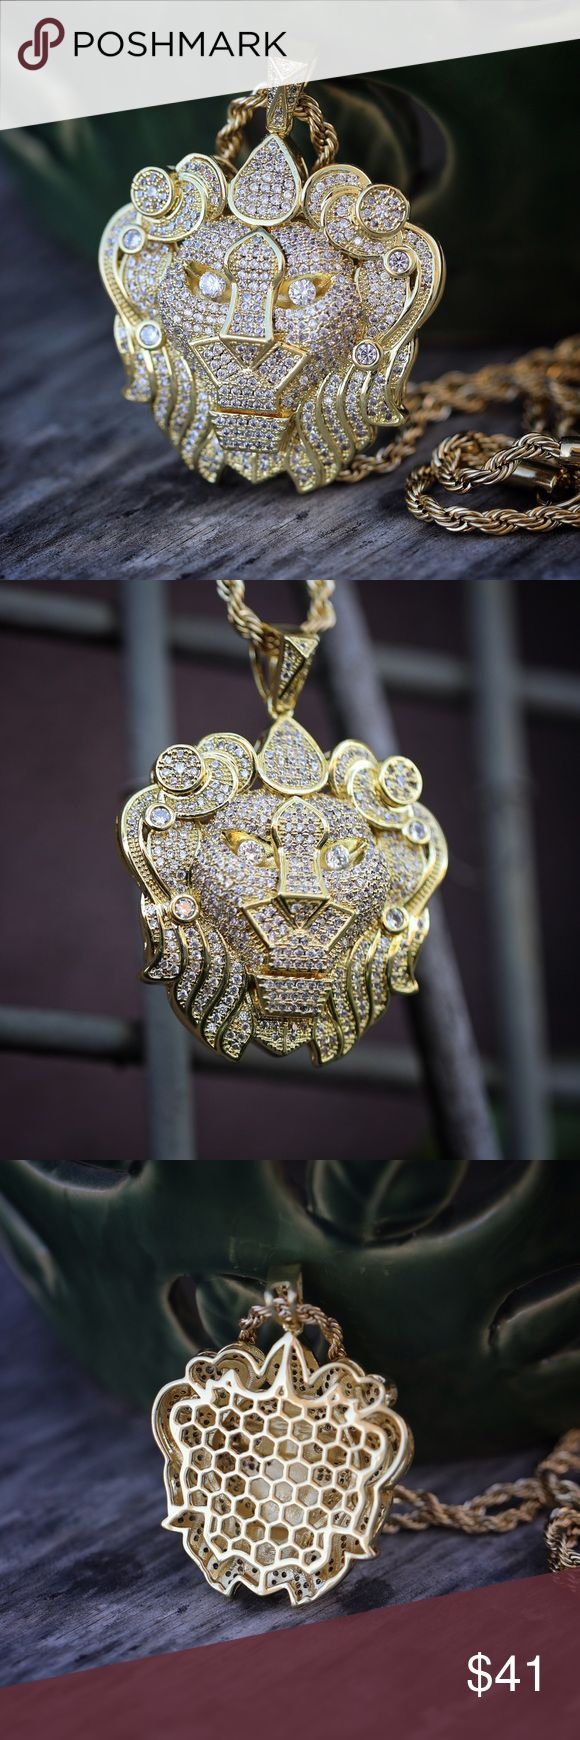 14k Gold Plated Lion Pendant Charm Necklace Iced Out 14k Gold Plated Lion Pendant Charm Necklace  Lion pendant is fully iced out with white lab simulated diamonds. Pendant size is 1.75 inches in length Chain is 14k gold plated over 316 stainless steel. This lion pendant comes with a 3mm width,20,22,24,26 or 30 inch 316 stainless steel 14k gold plated rope chain. TSV Jewelers Accessories Jewelry